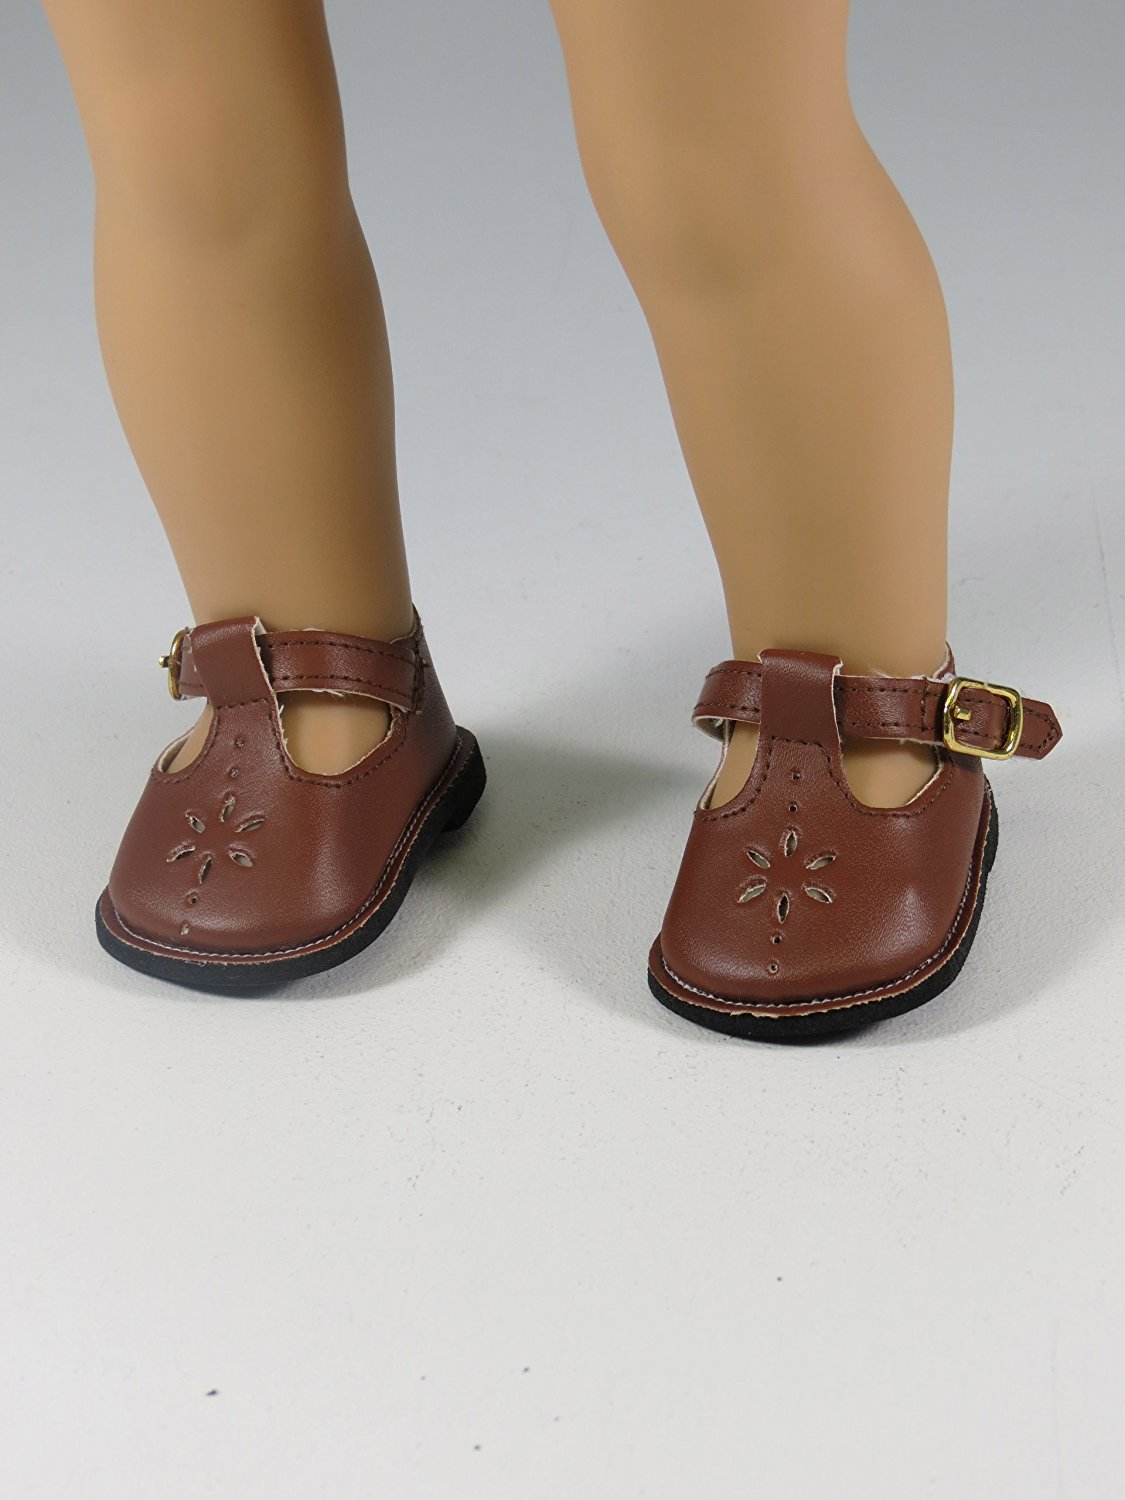 12bf57ce3bec Get Quotations · Brown Flower Mary Janes Shoes. -Doll clothing Accessory  -Fits 18